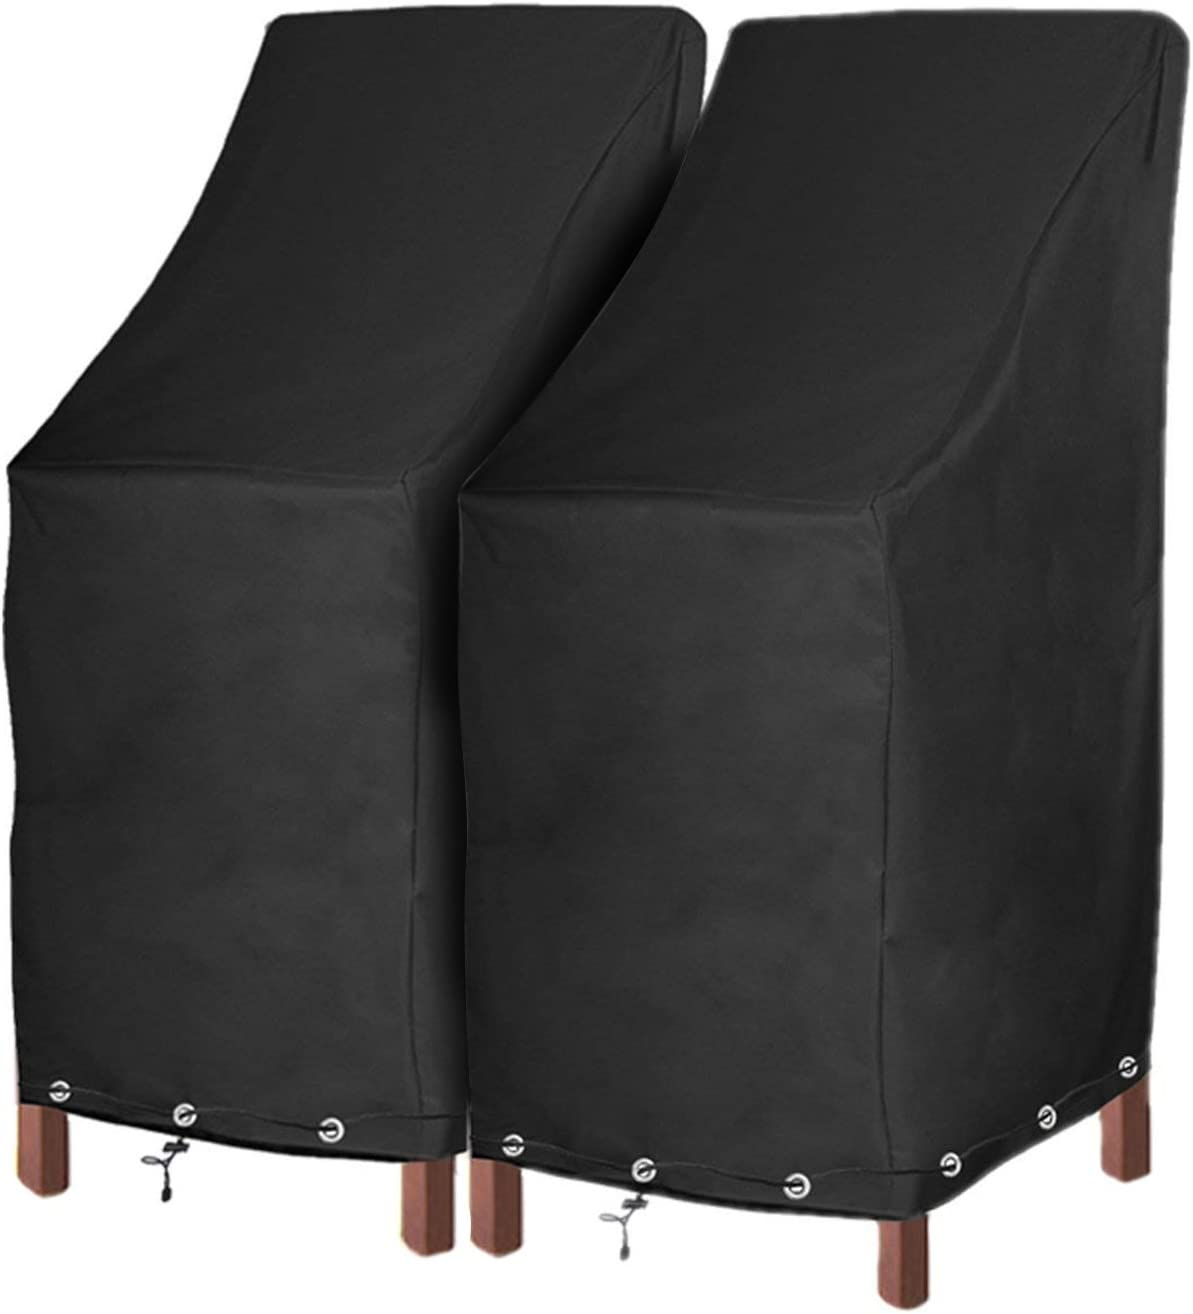 Patio Chair Covers Waterproof Durable Outdoor Bar Stool Cover Premium  Stairs Cover Stackable Chairs Cover Black Thick Oxford Cloth (L8.8 x D8.8  x